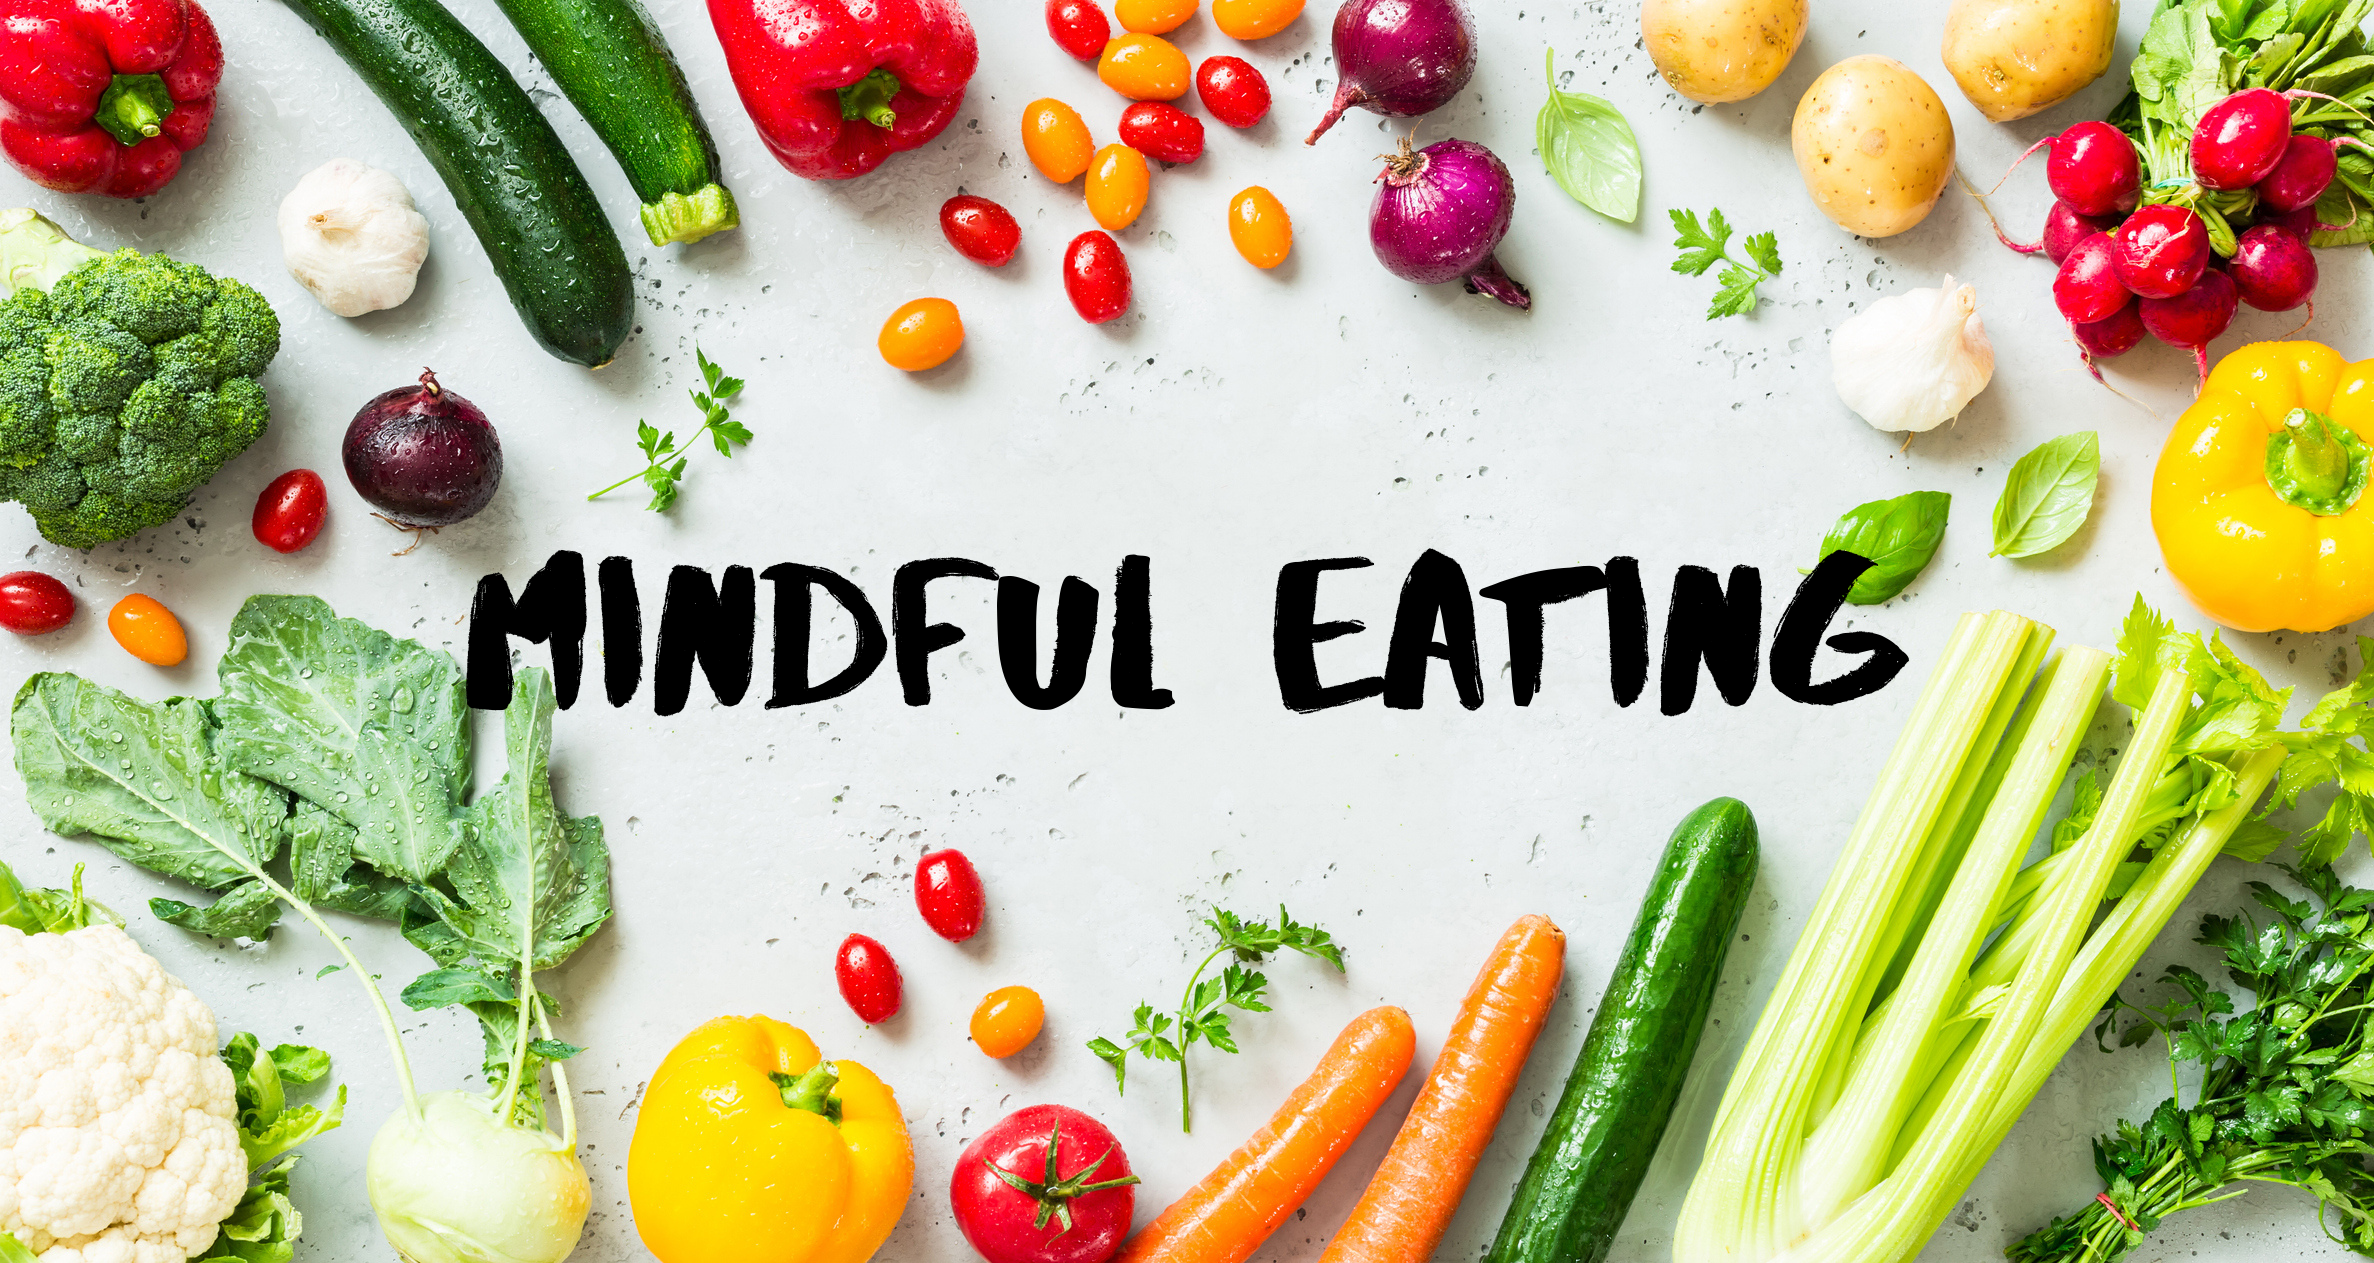 Restoring Your Health through Mindful Eating